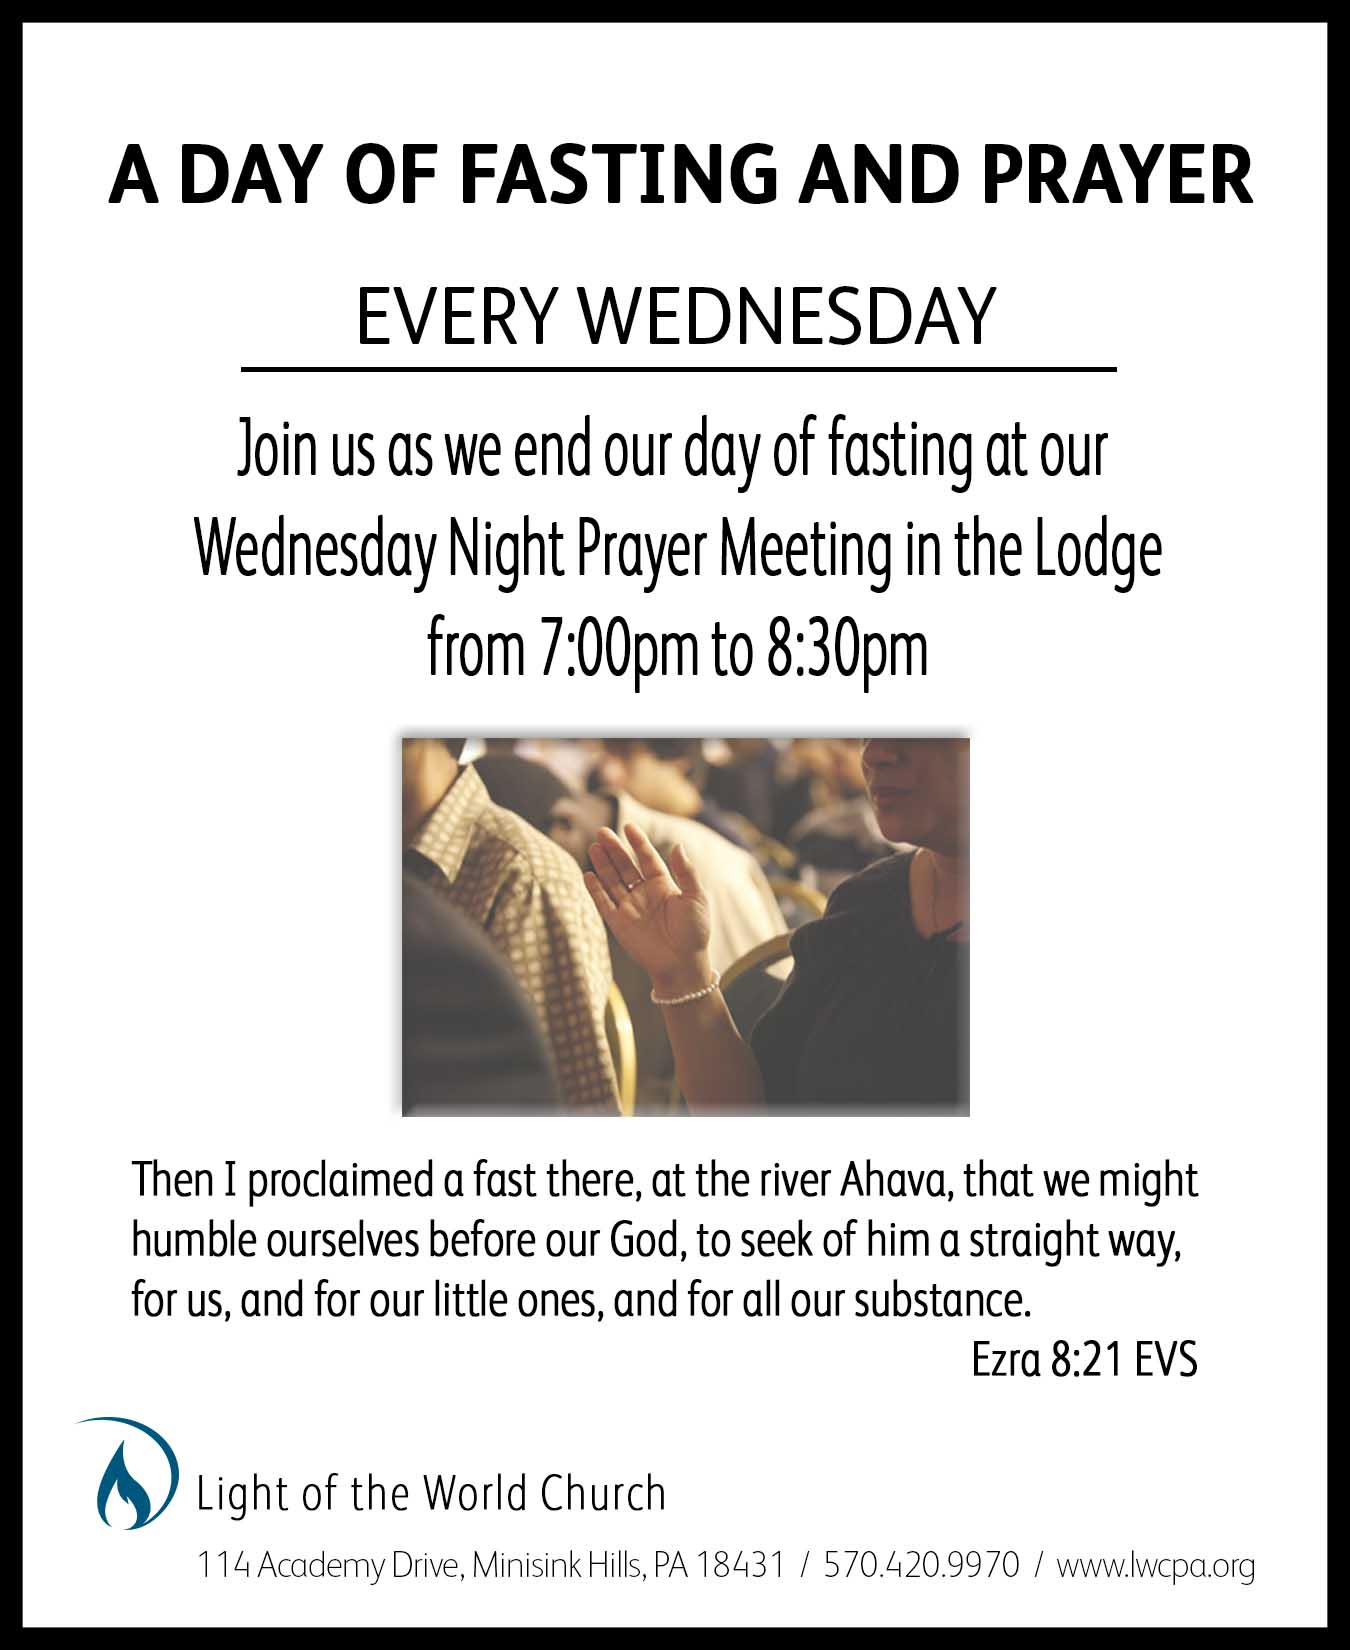 Fasting Praying Wed. 2019